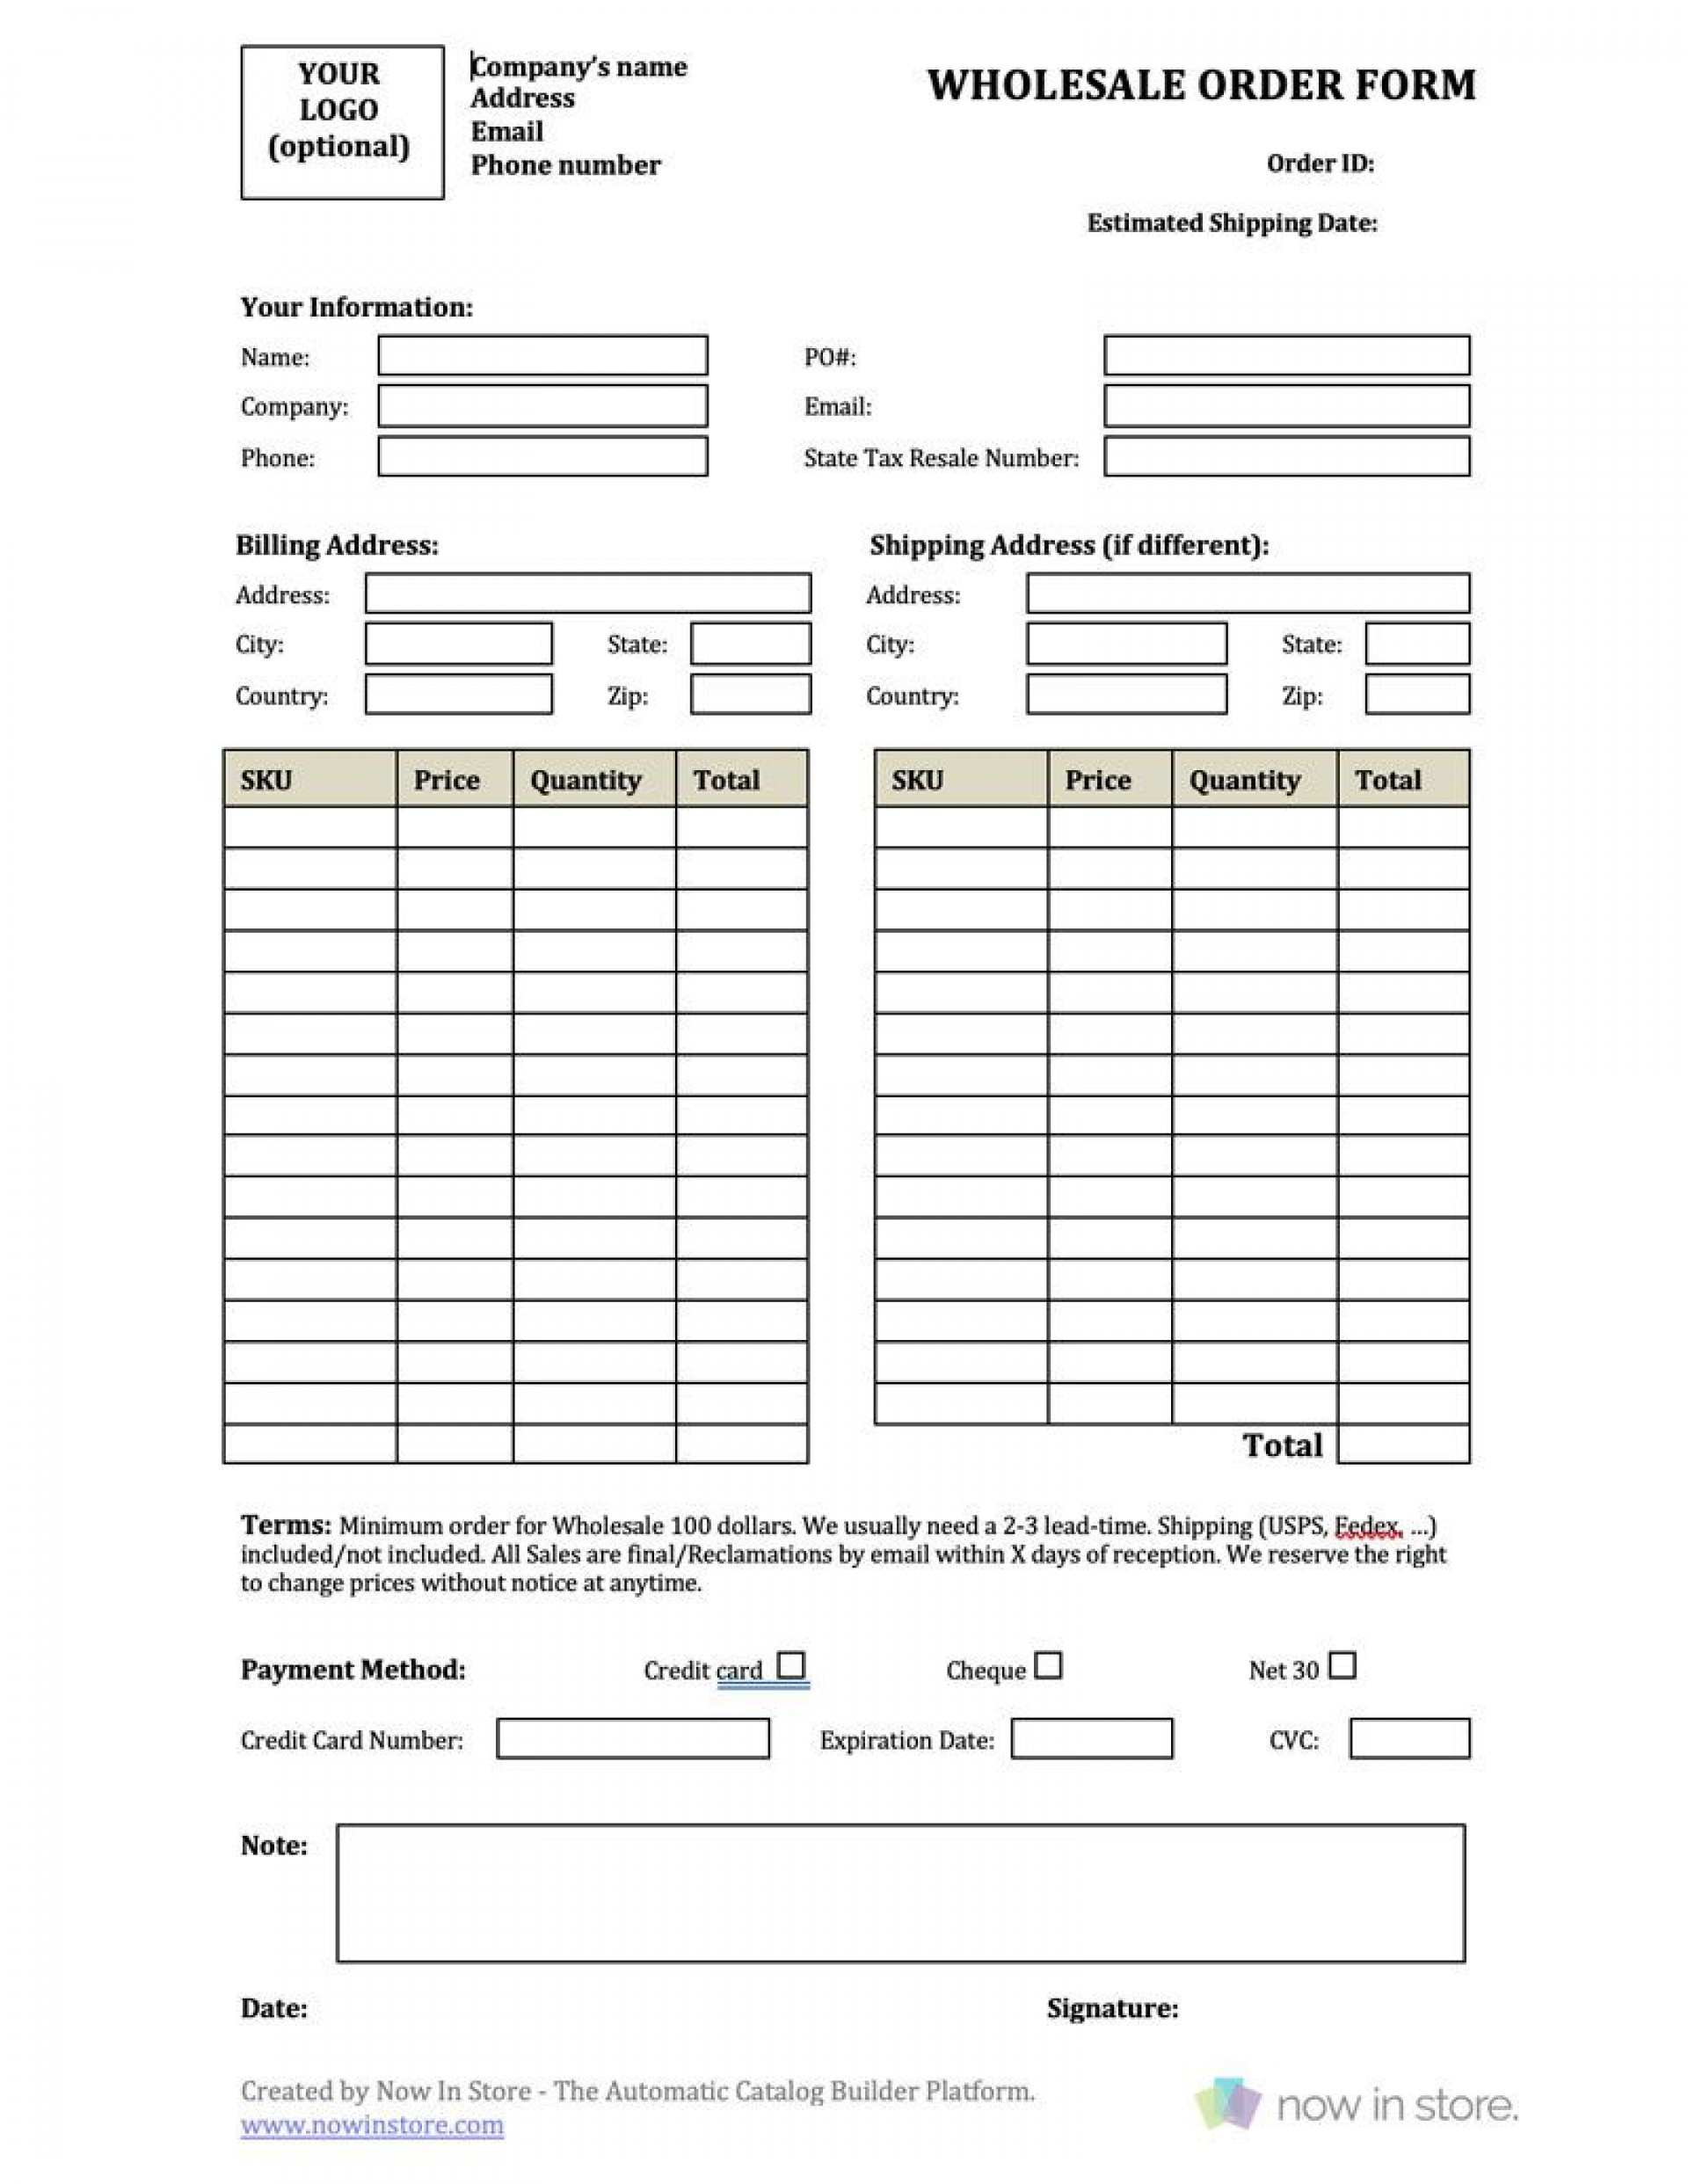 009 Awful Busines Credit Application Template Excel Photo  Form1920